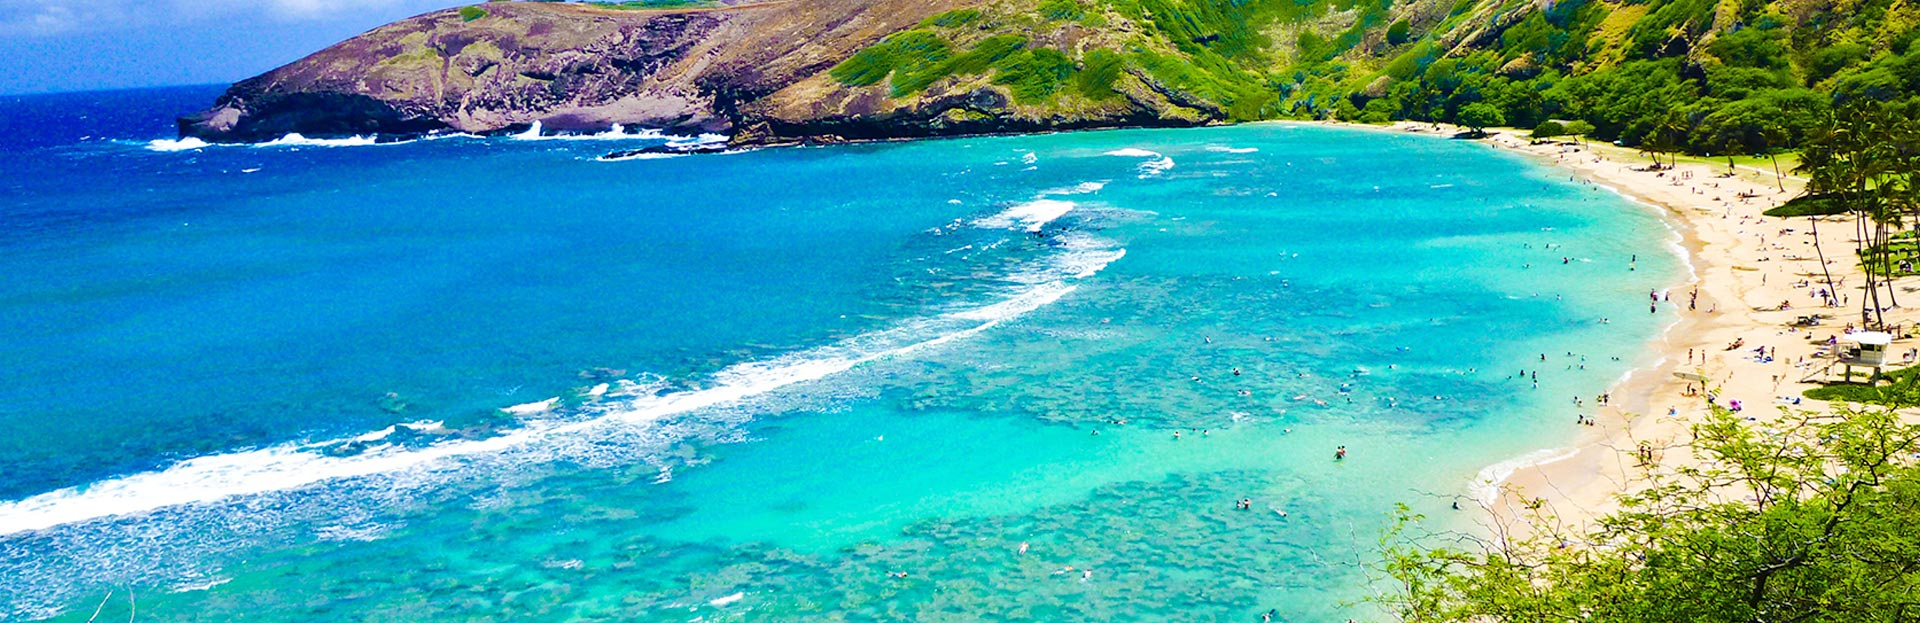 Hawaii Vacations Packages From Canada Tripcentral Ca